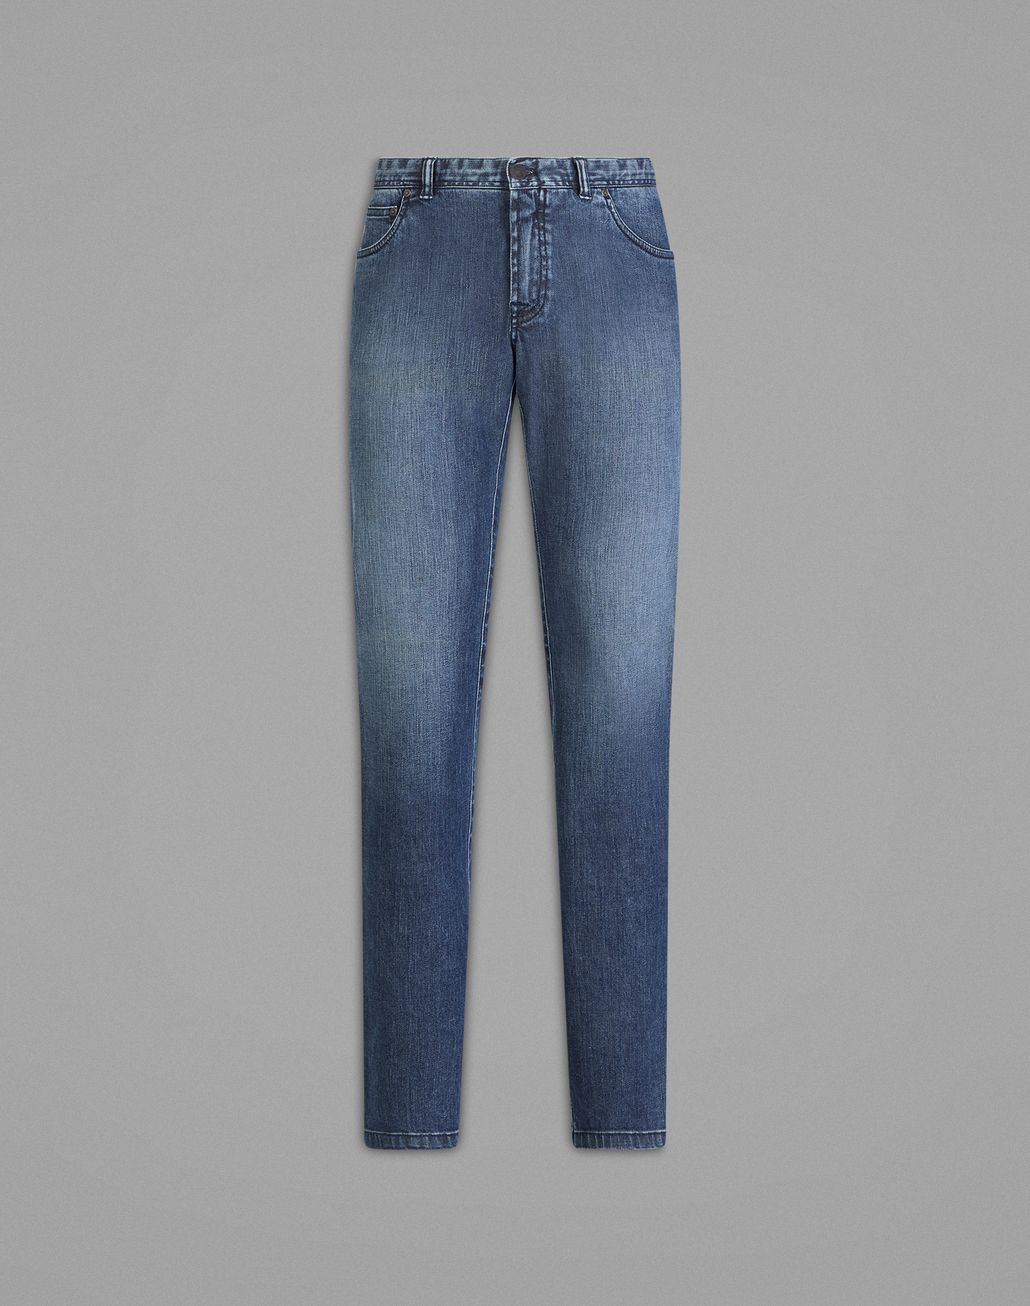 BRIONI Jeans Meribel Blu Navy Denim Uomo f